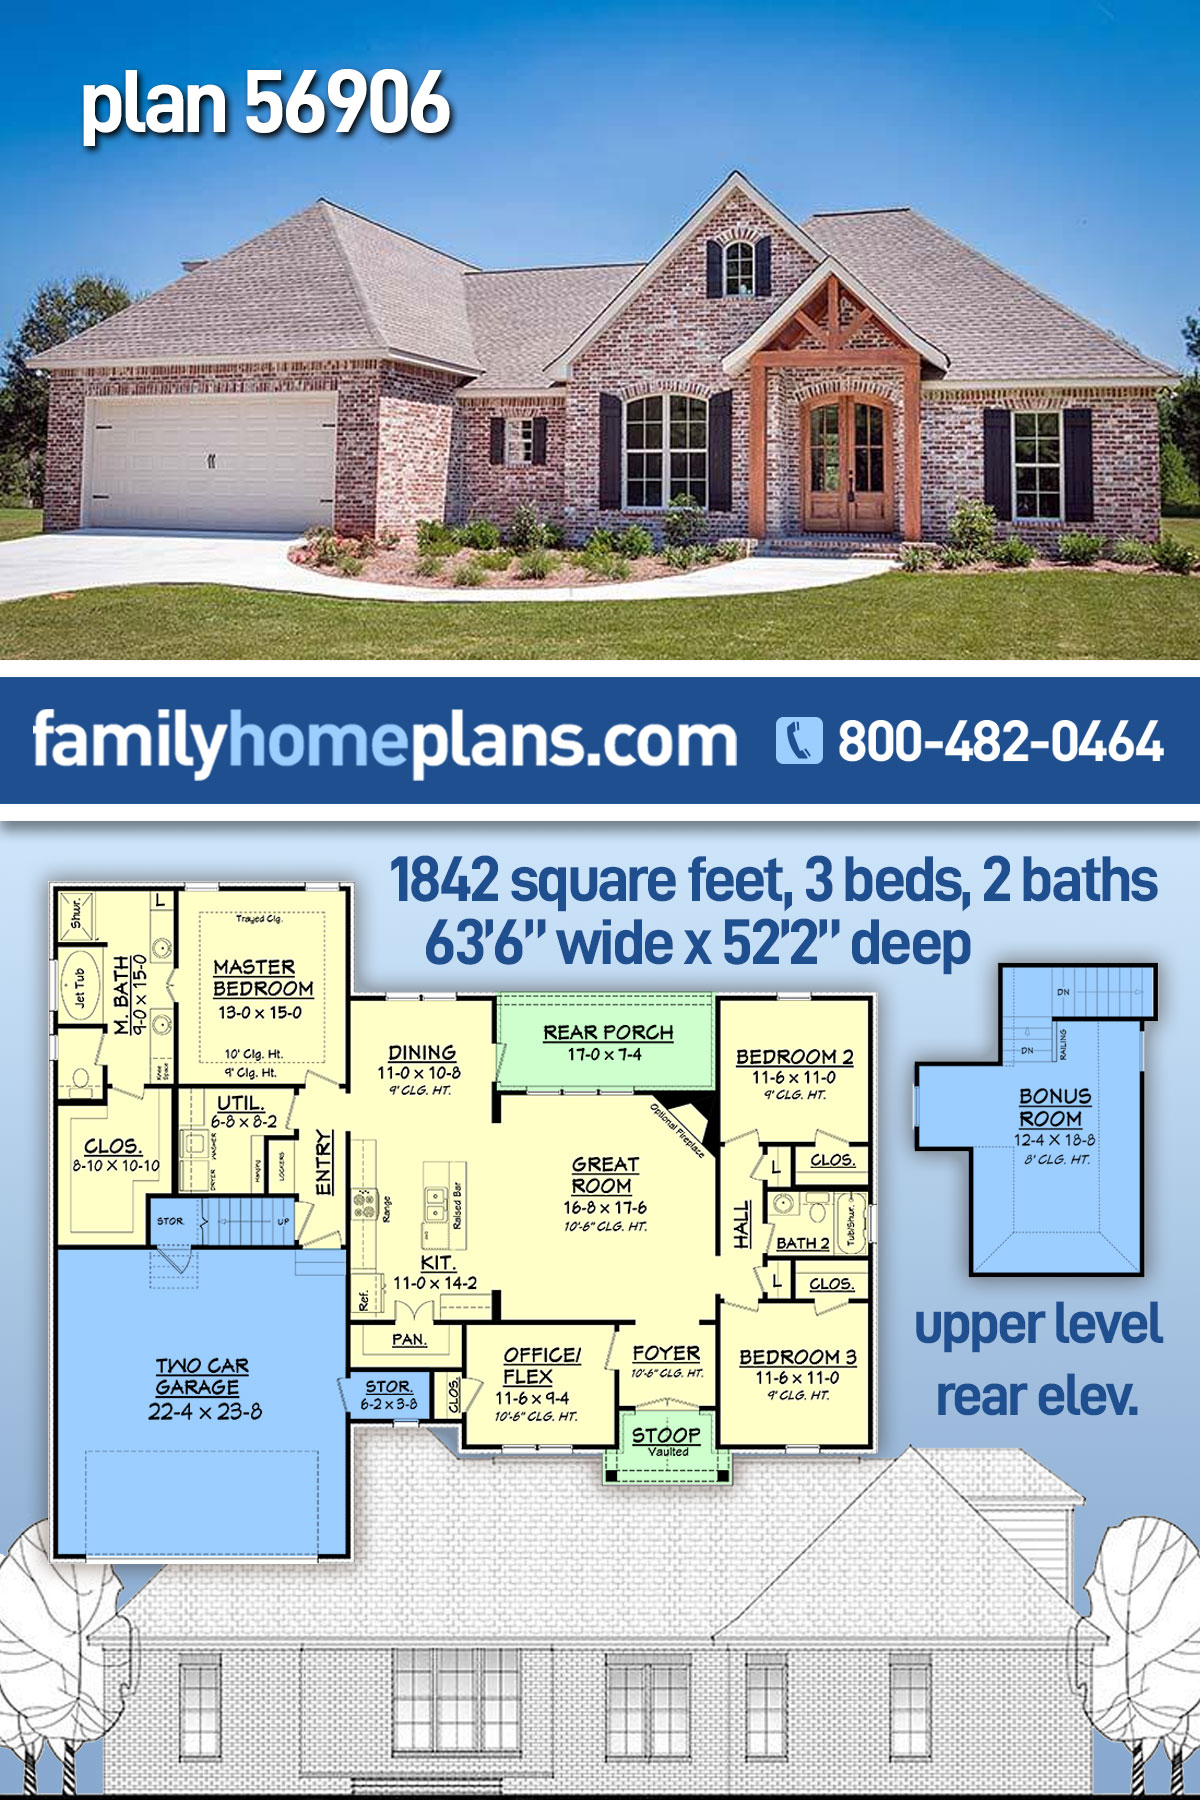 French Country , Traditional House Plan 56906 with 3 Beds, 2 Baths, 2 Car Garage